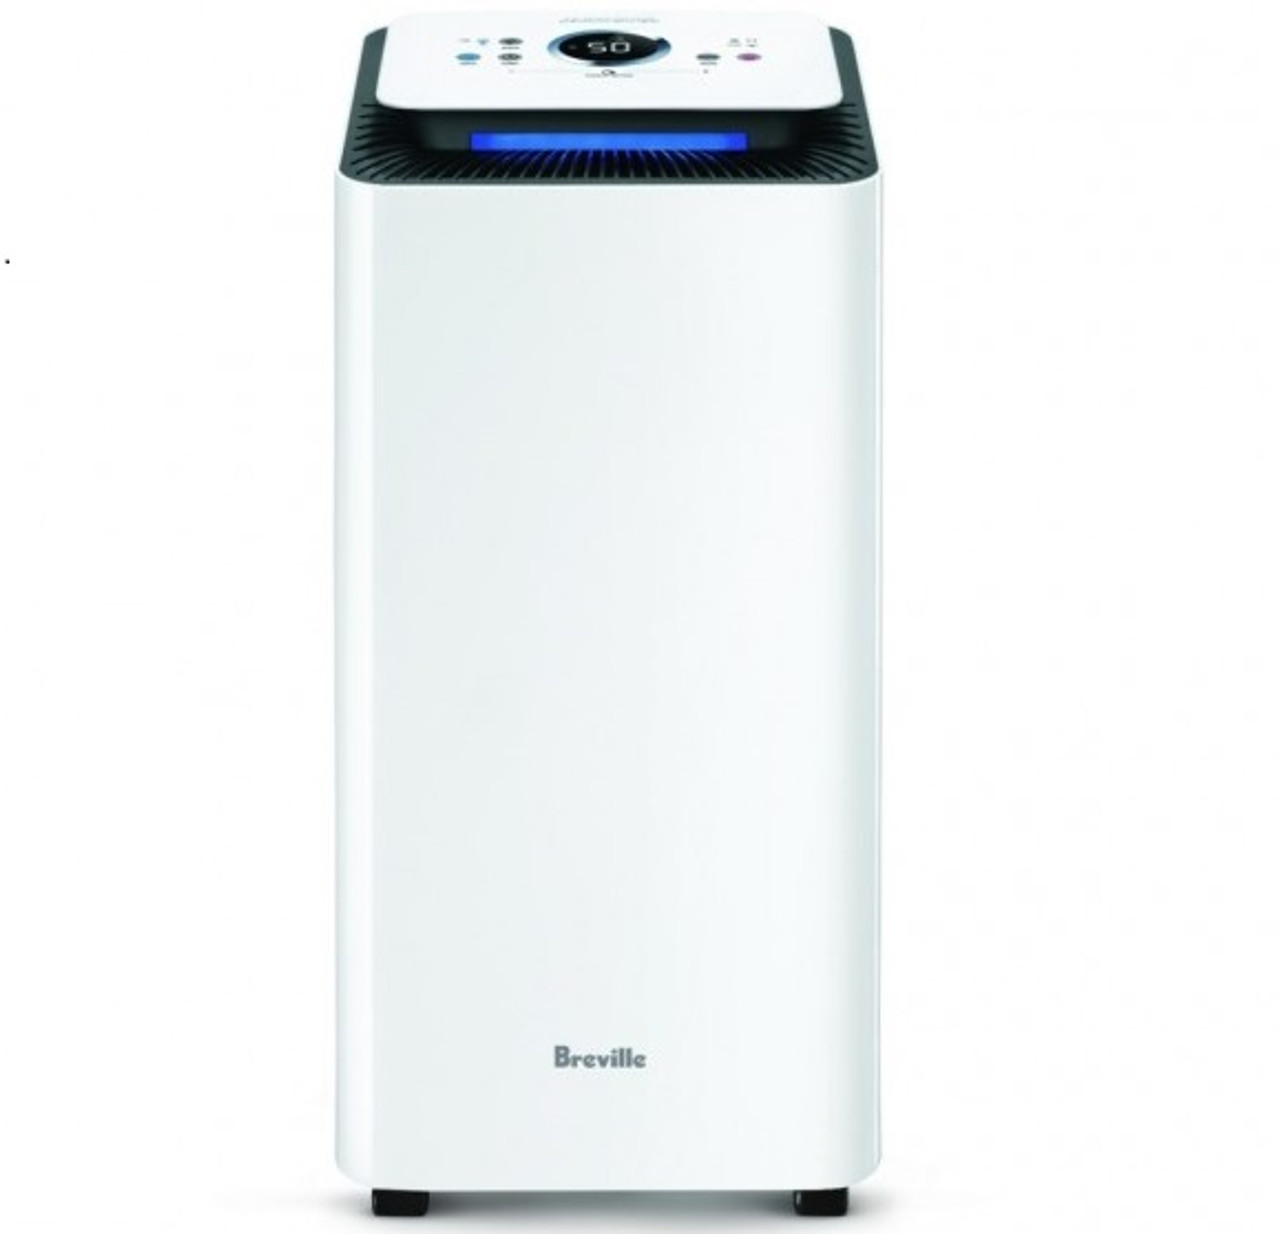 Breville LAD300 the Smart Dry Plus Dehumidifier With 30 - 50m2 Range - RRP $449.95